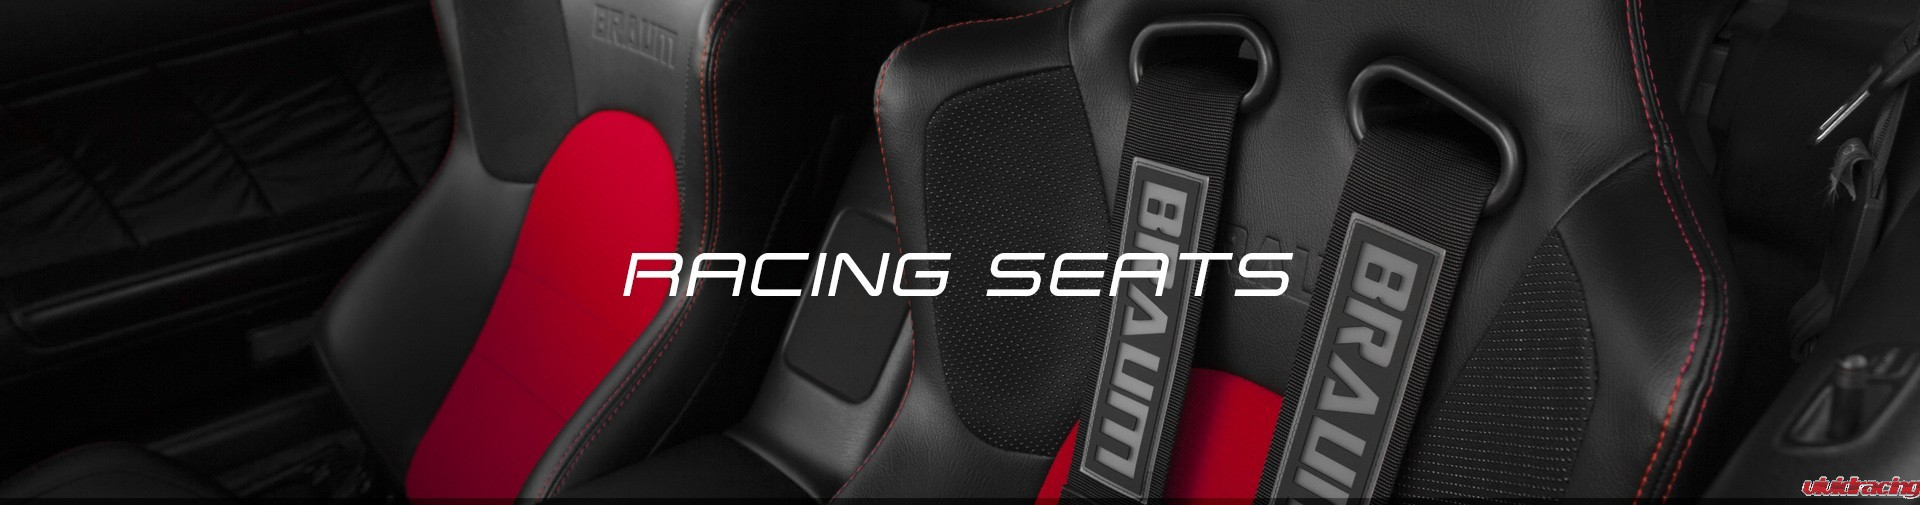 universal_racing_seat_category